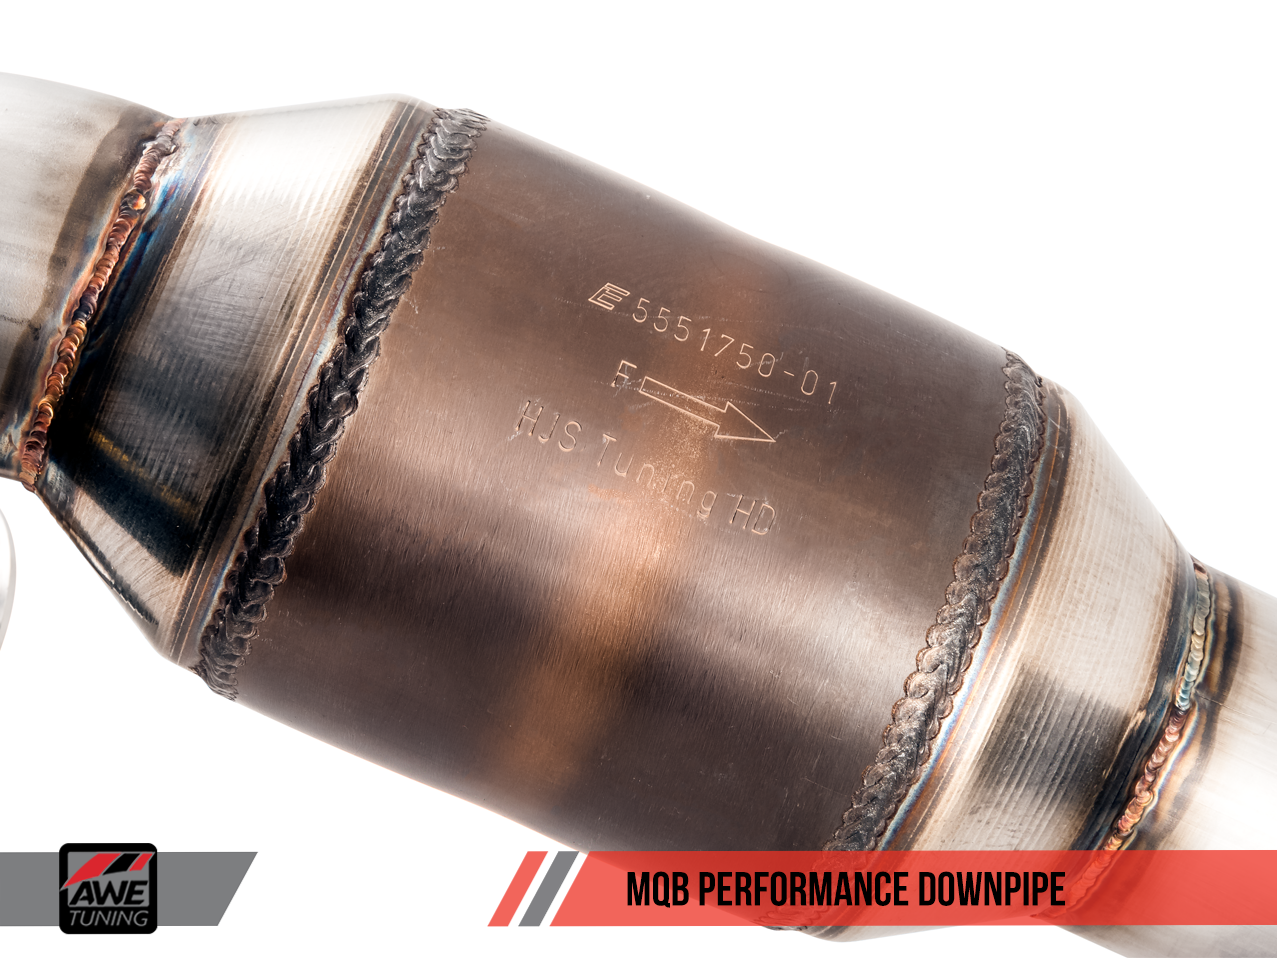 AWE Performance Downpipe for MQB for VW MK7 GTI